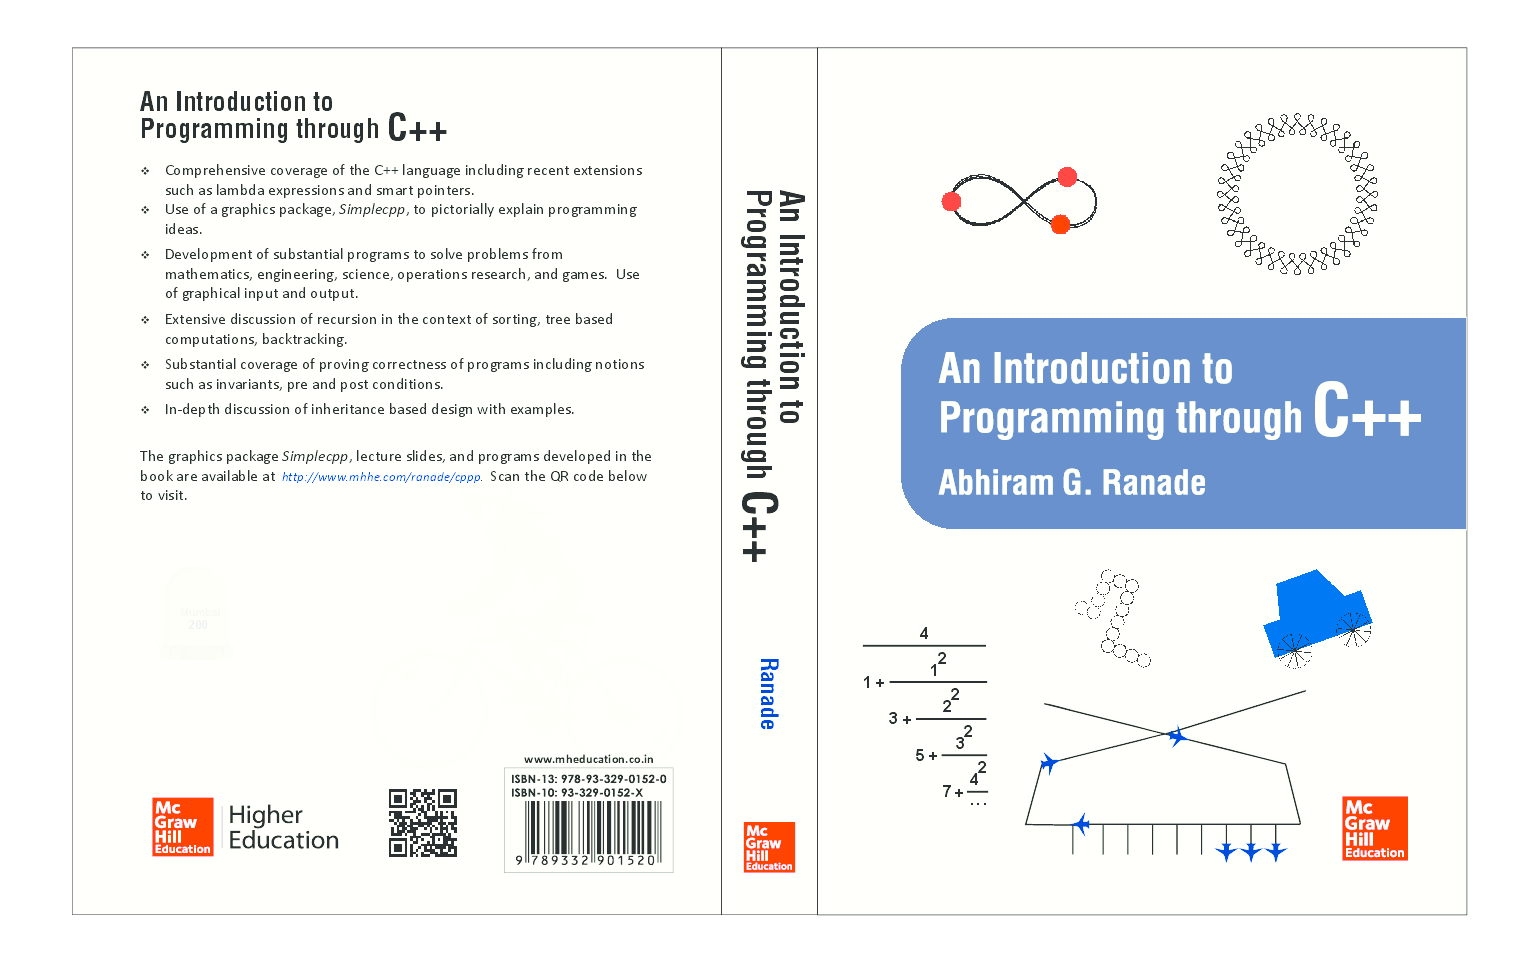 introduction to problem solving and programming through c++ by abhiram ranade